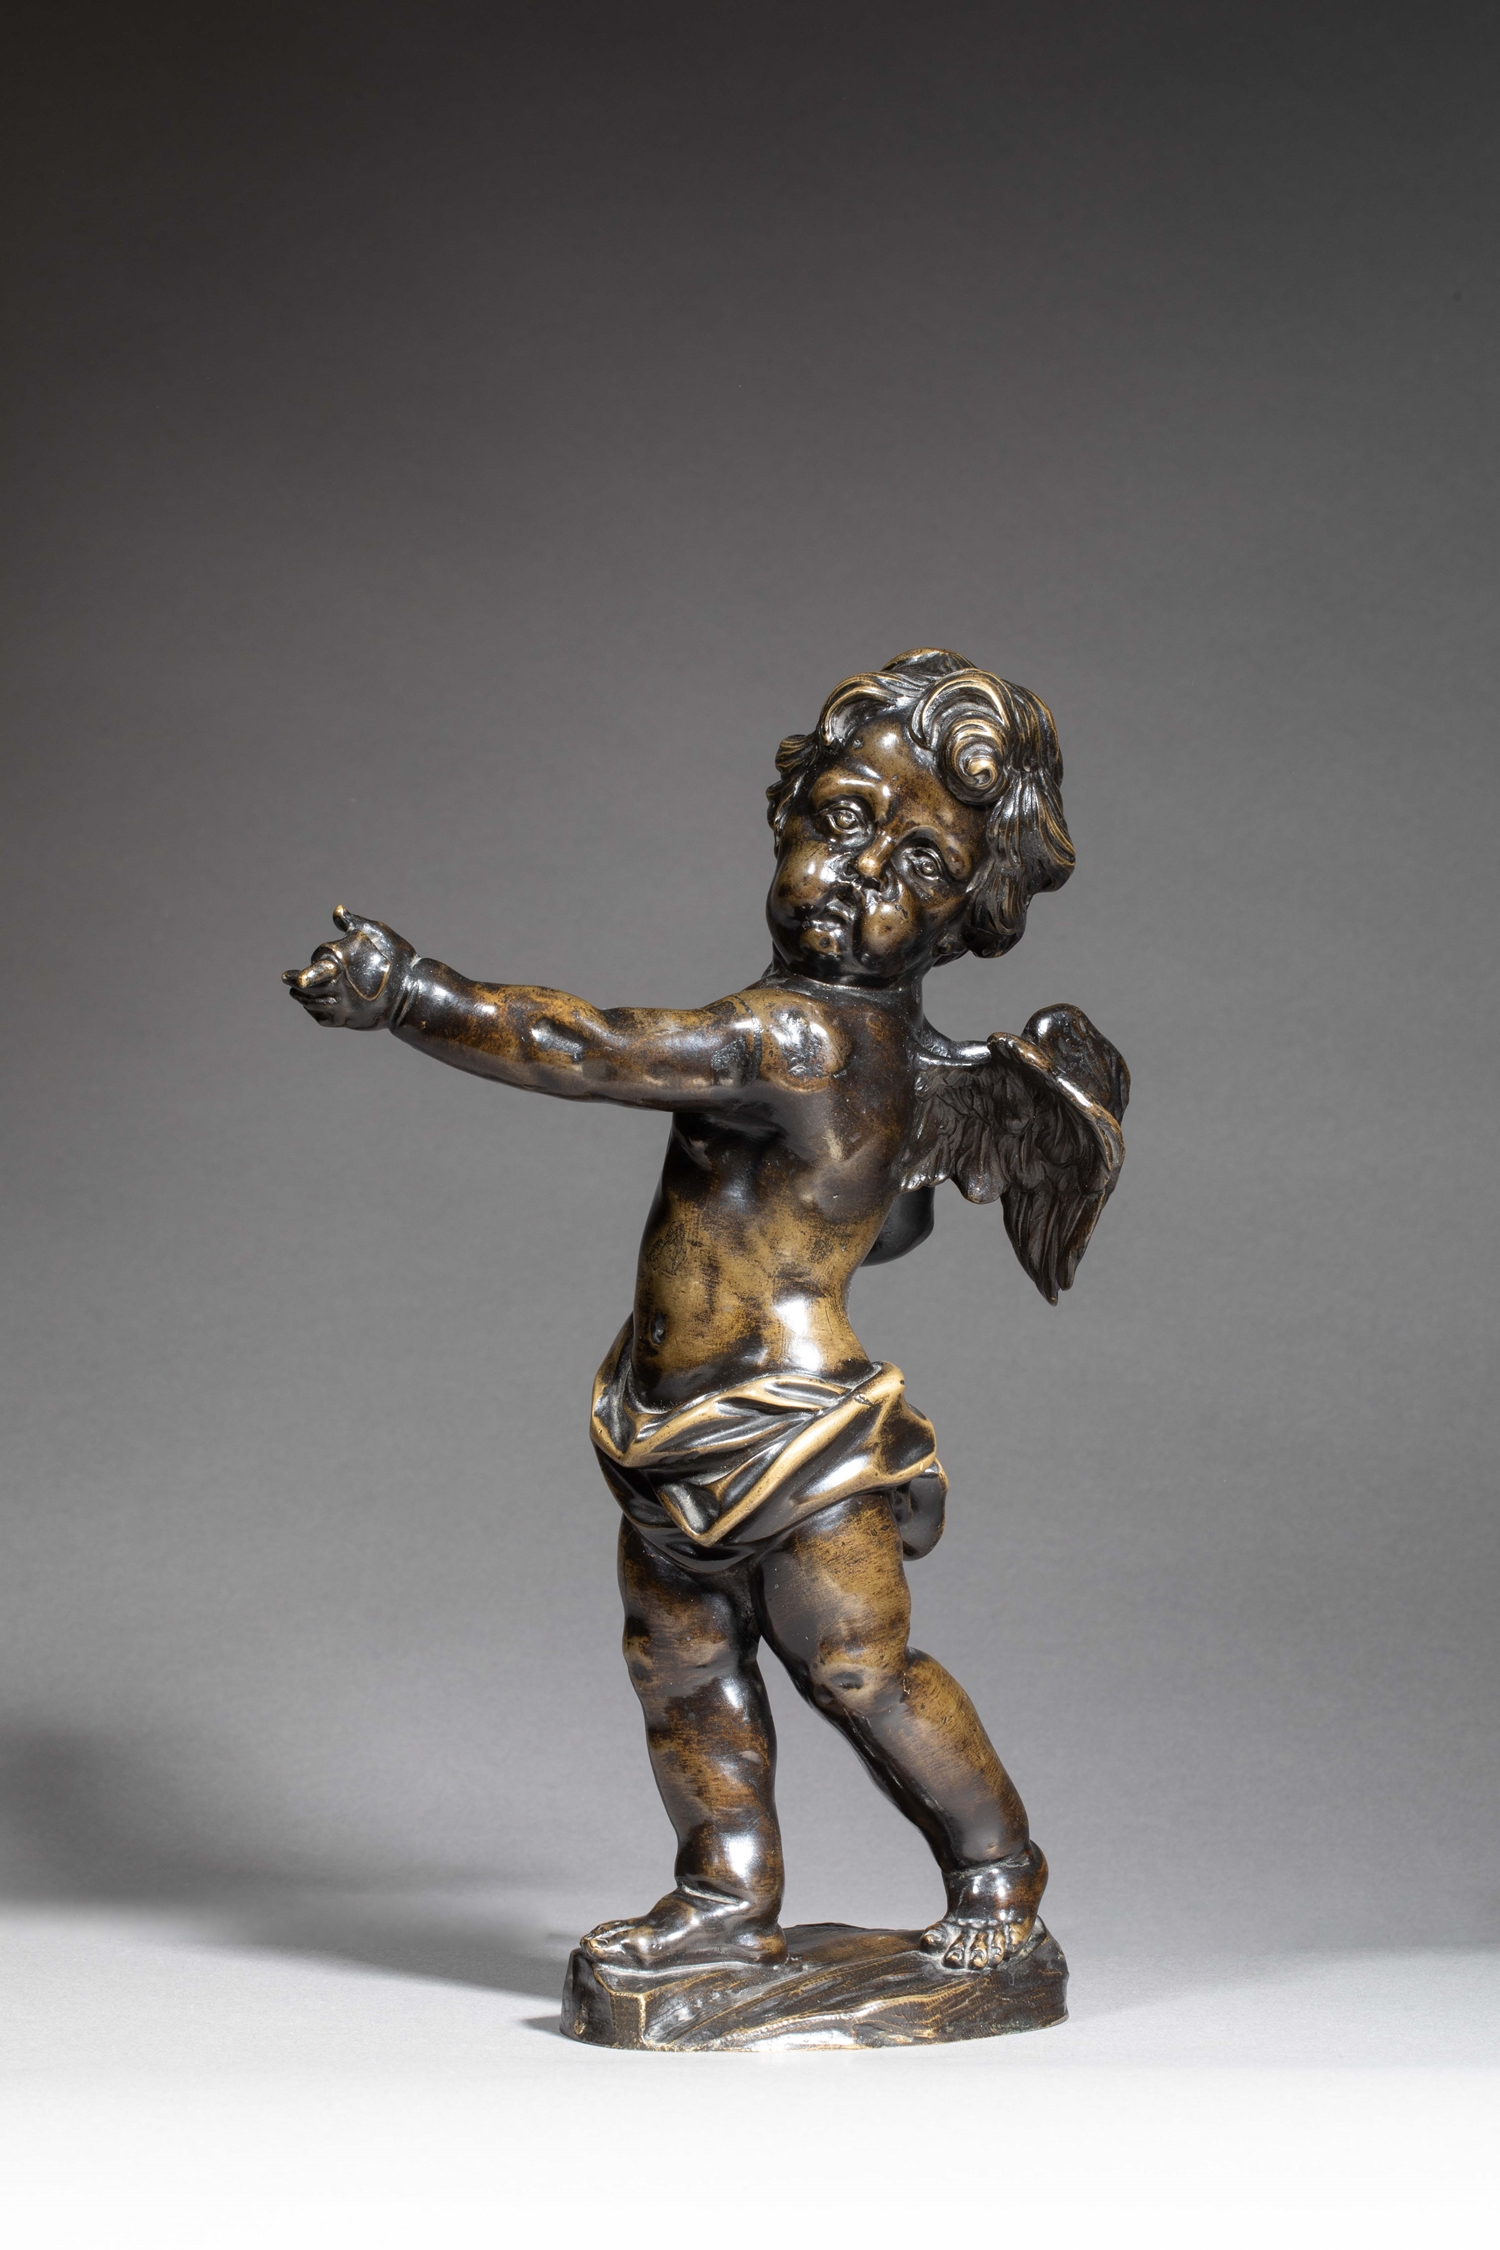 BAROQUE PUTTO HOLDING A PHYLACTERY NORTHERN ITALY FIRST QUARTER OF THE 18TH CENTURY